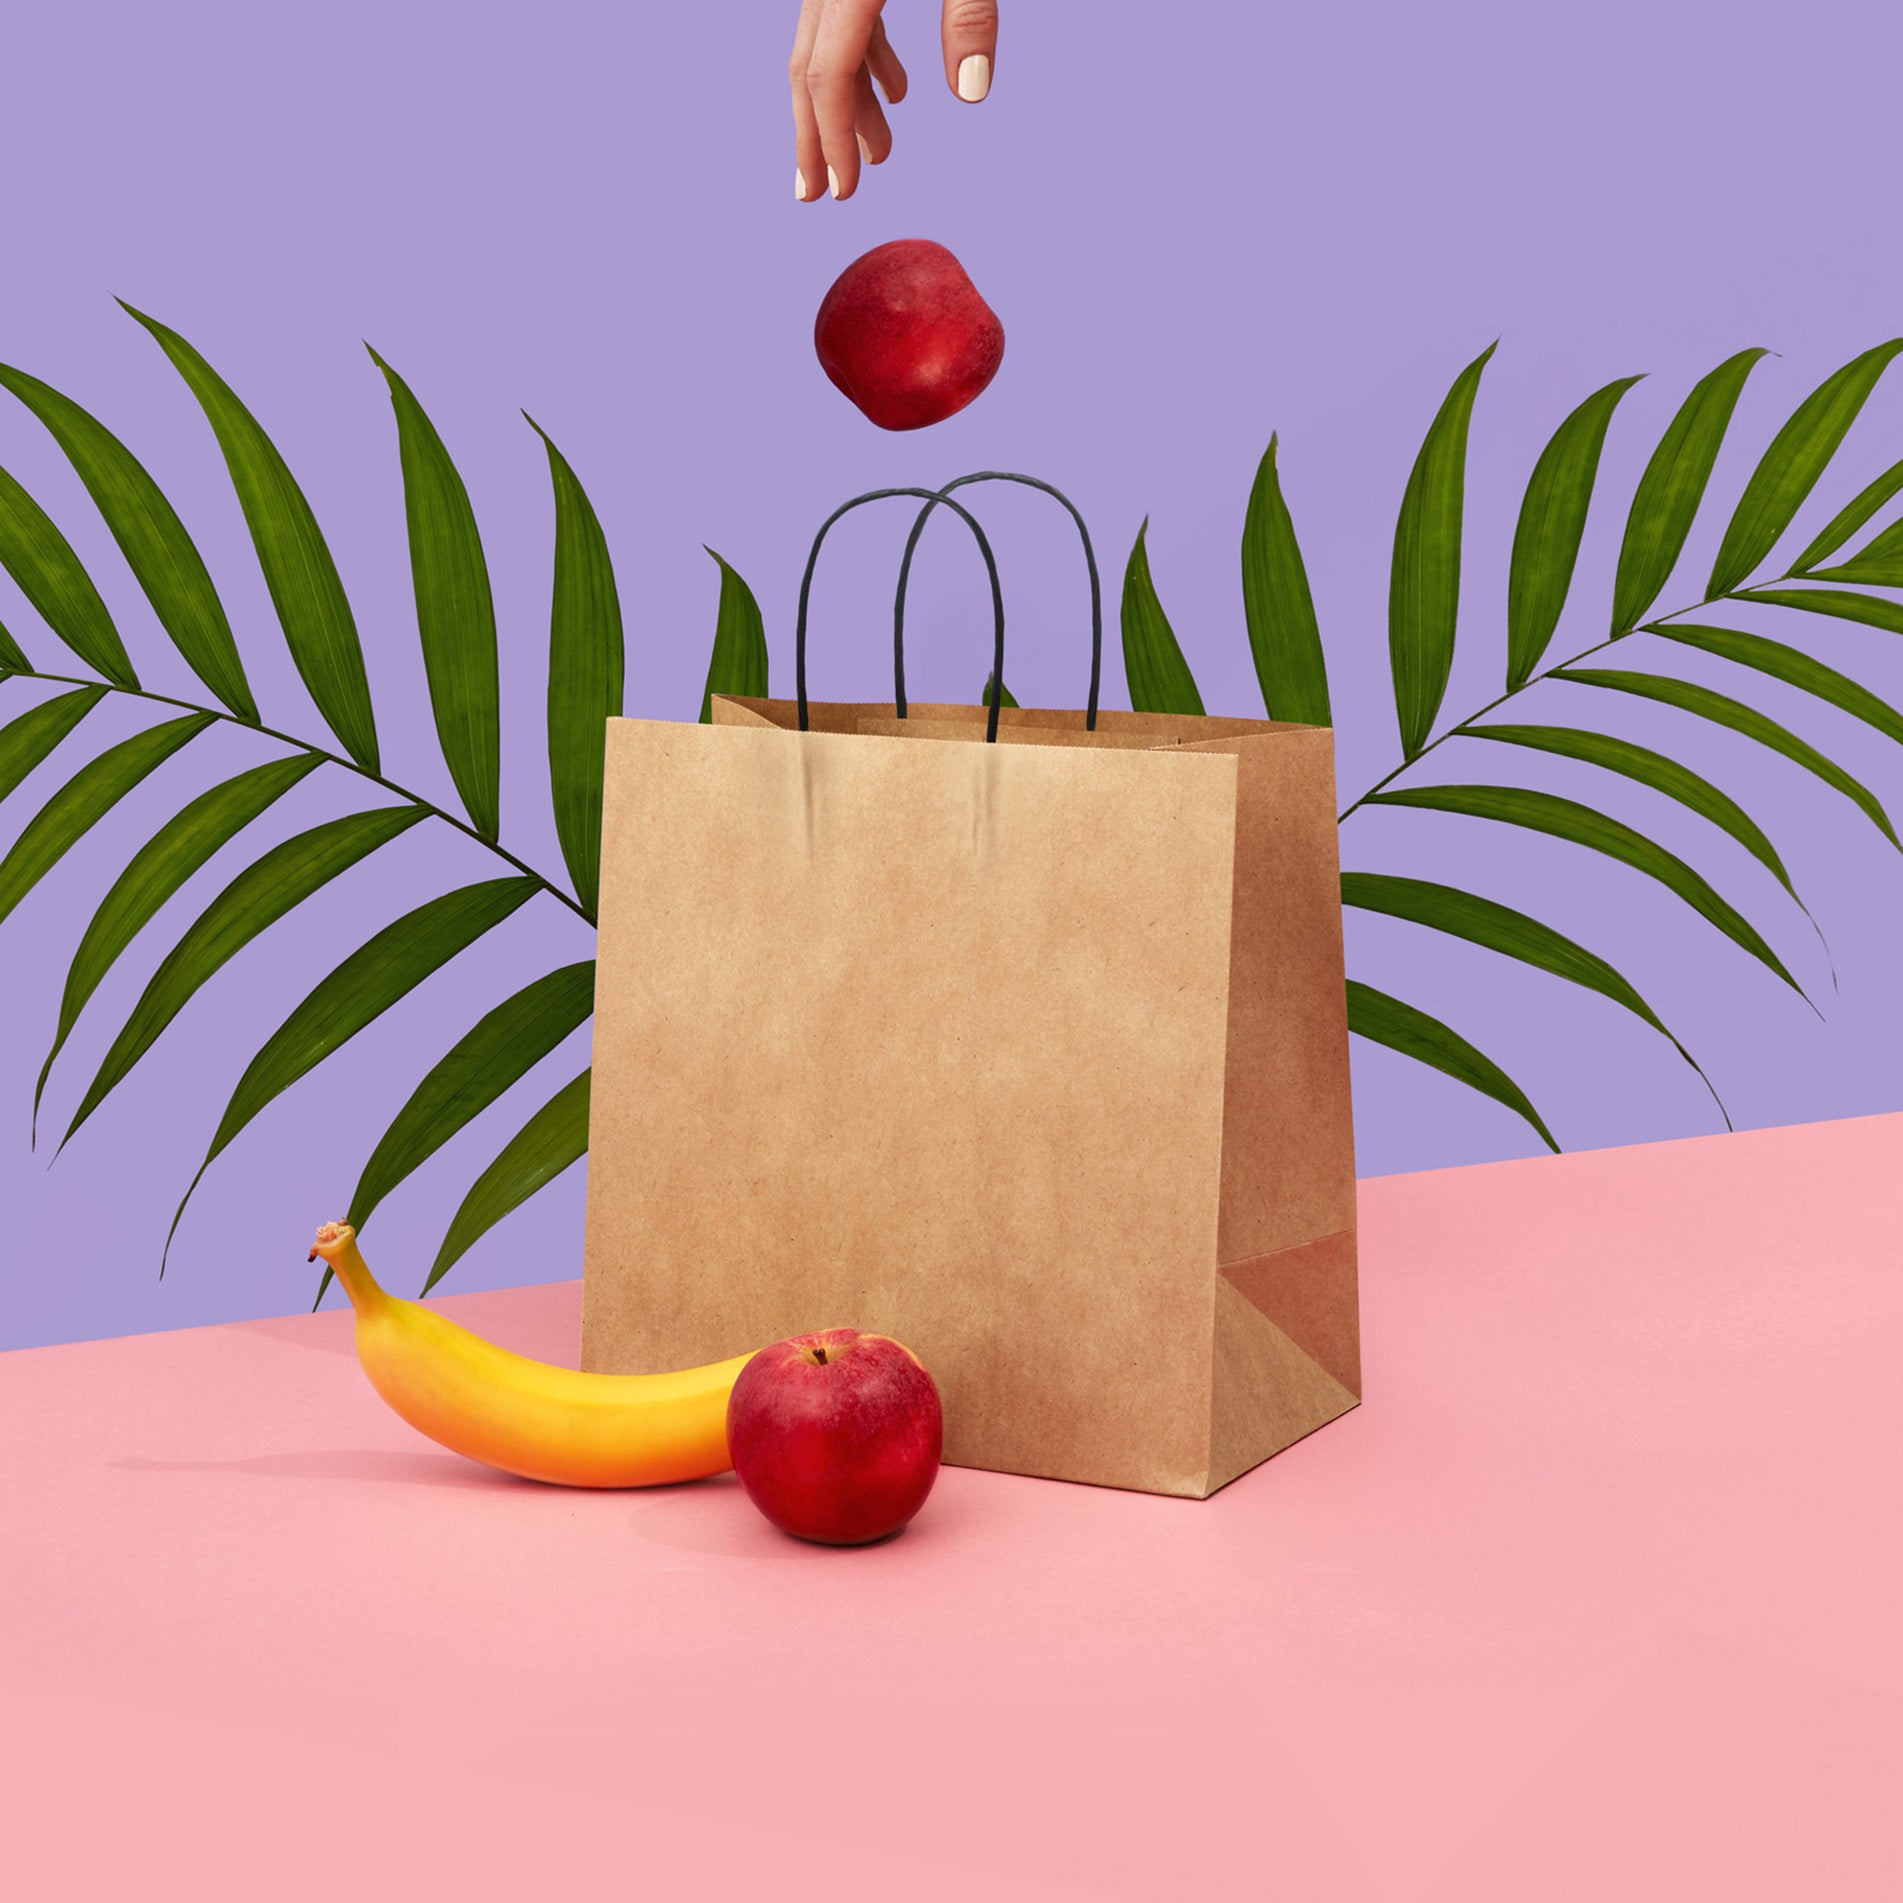 Ecoware - Packaging Made From Plants